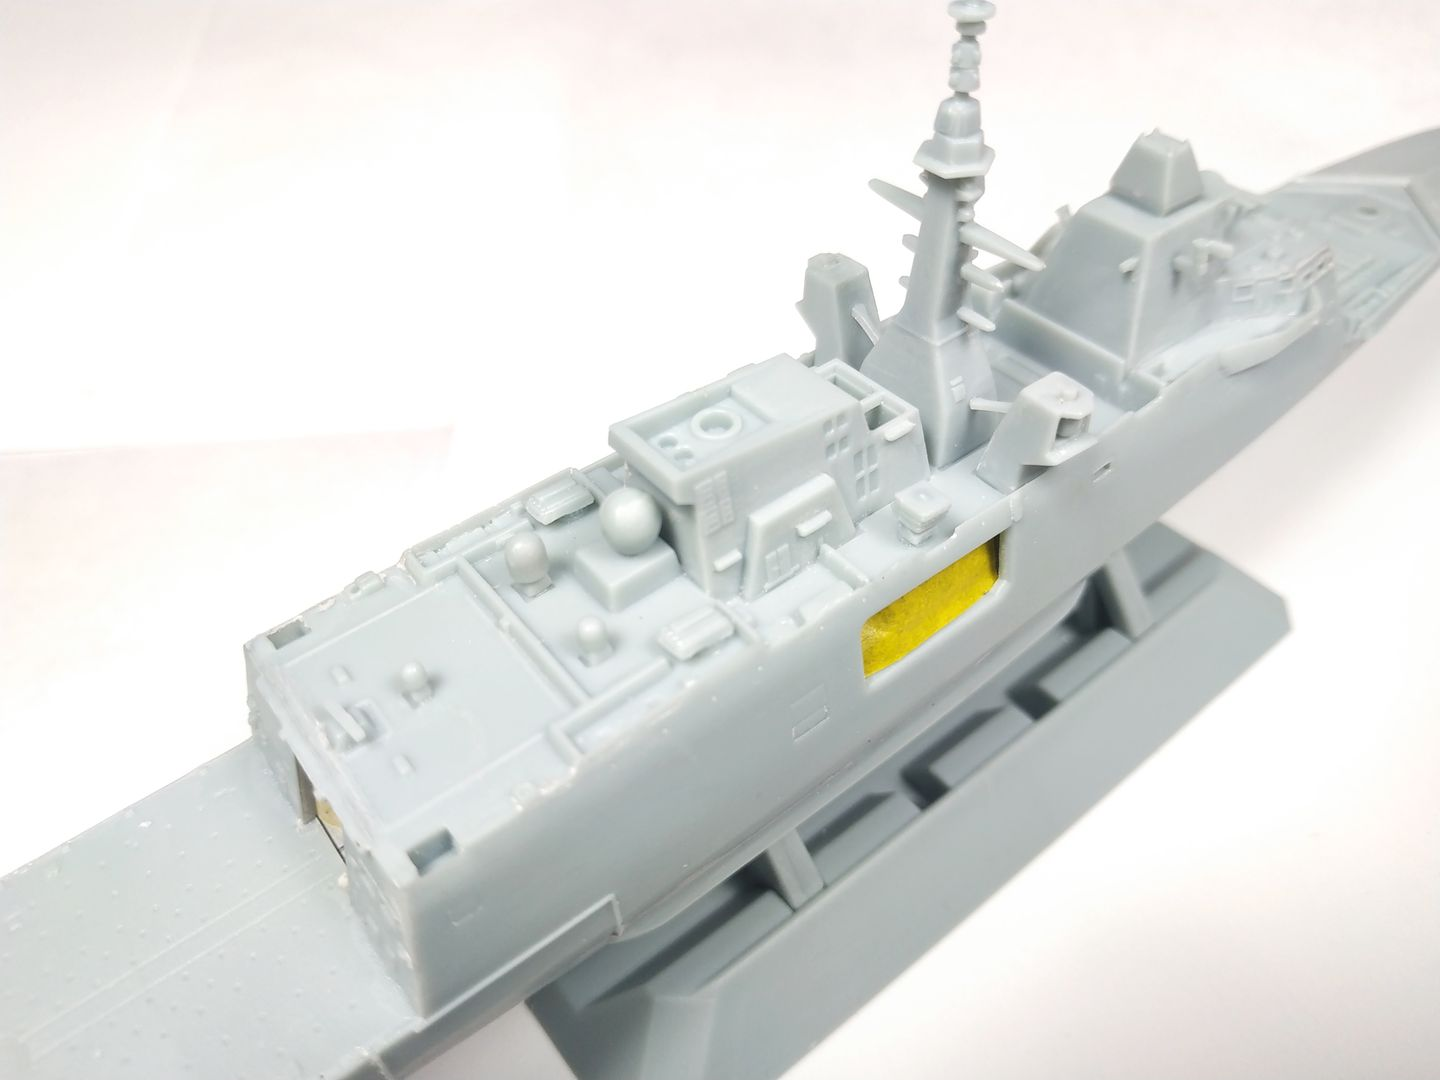 1/700 FREMM - Freedom Model Kit IMG_20190705_202534_zps83rbtxsy